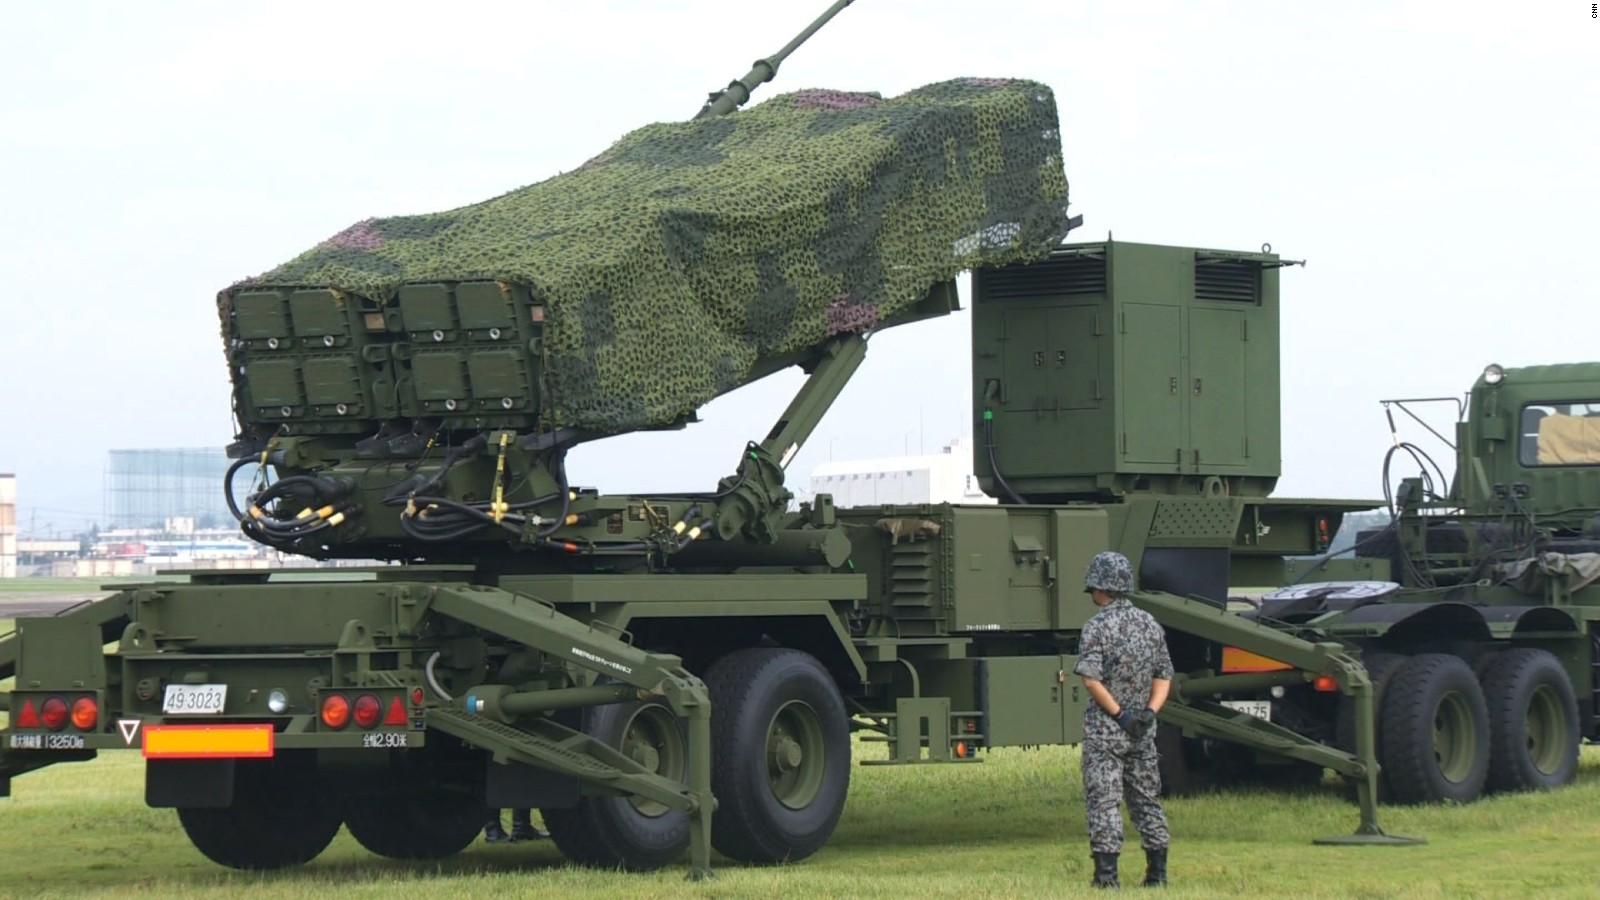 S 300 missile systems vs patriot - This Military Base Is Training To Shoot Down A North Korean Nuclear Missile Cnn